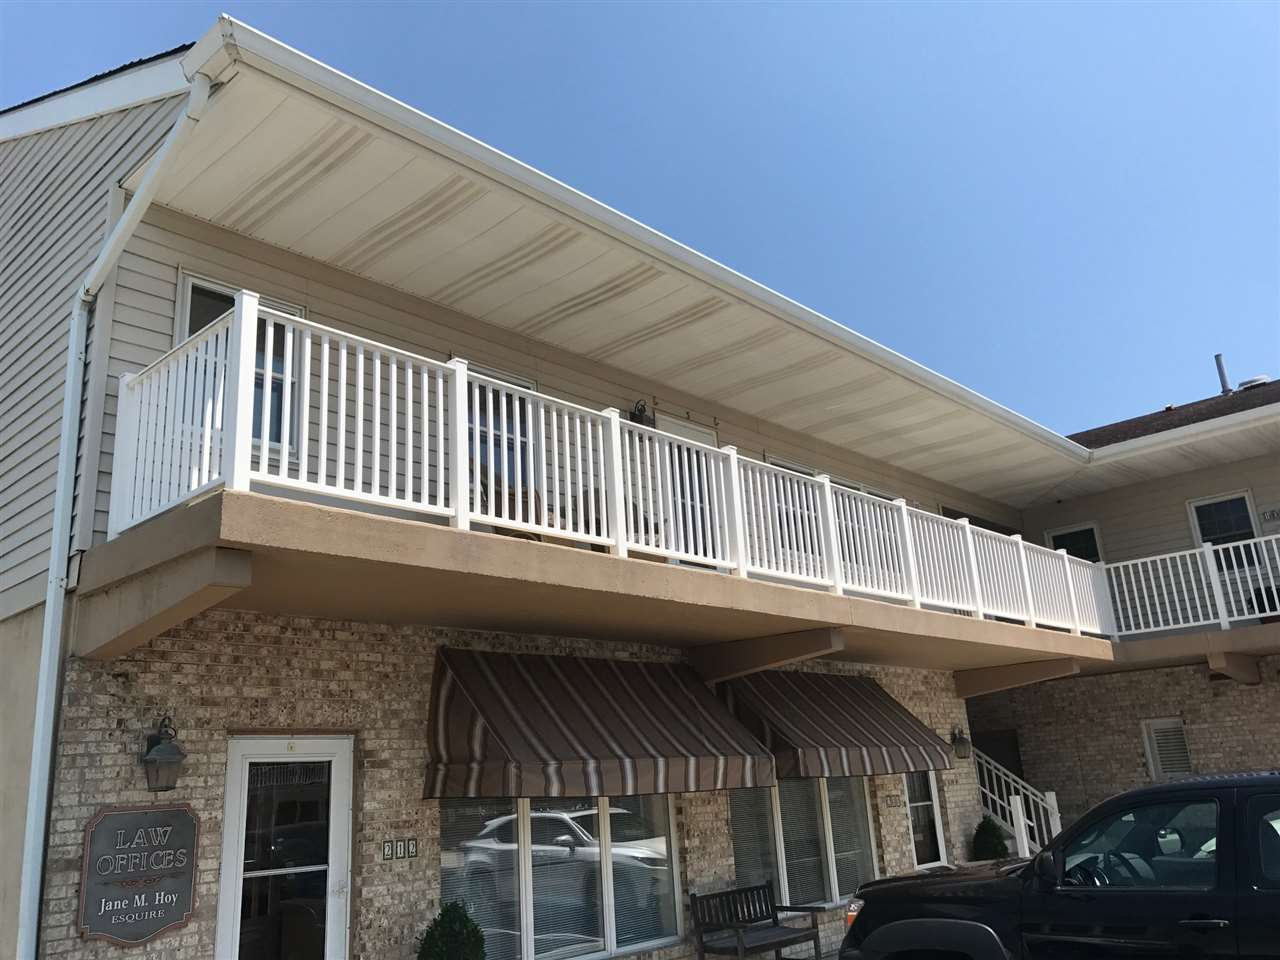 200, Unit 103 98th, Stone Harbor